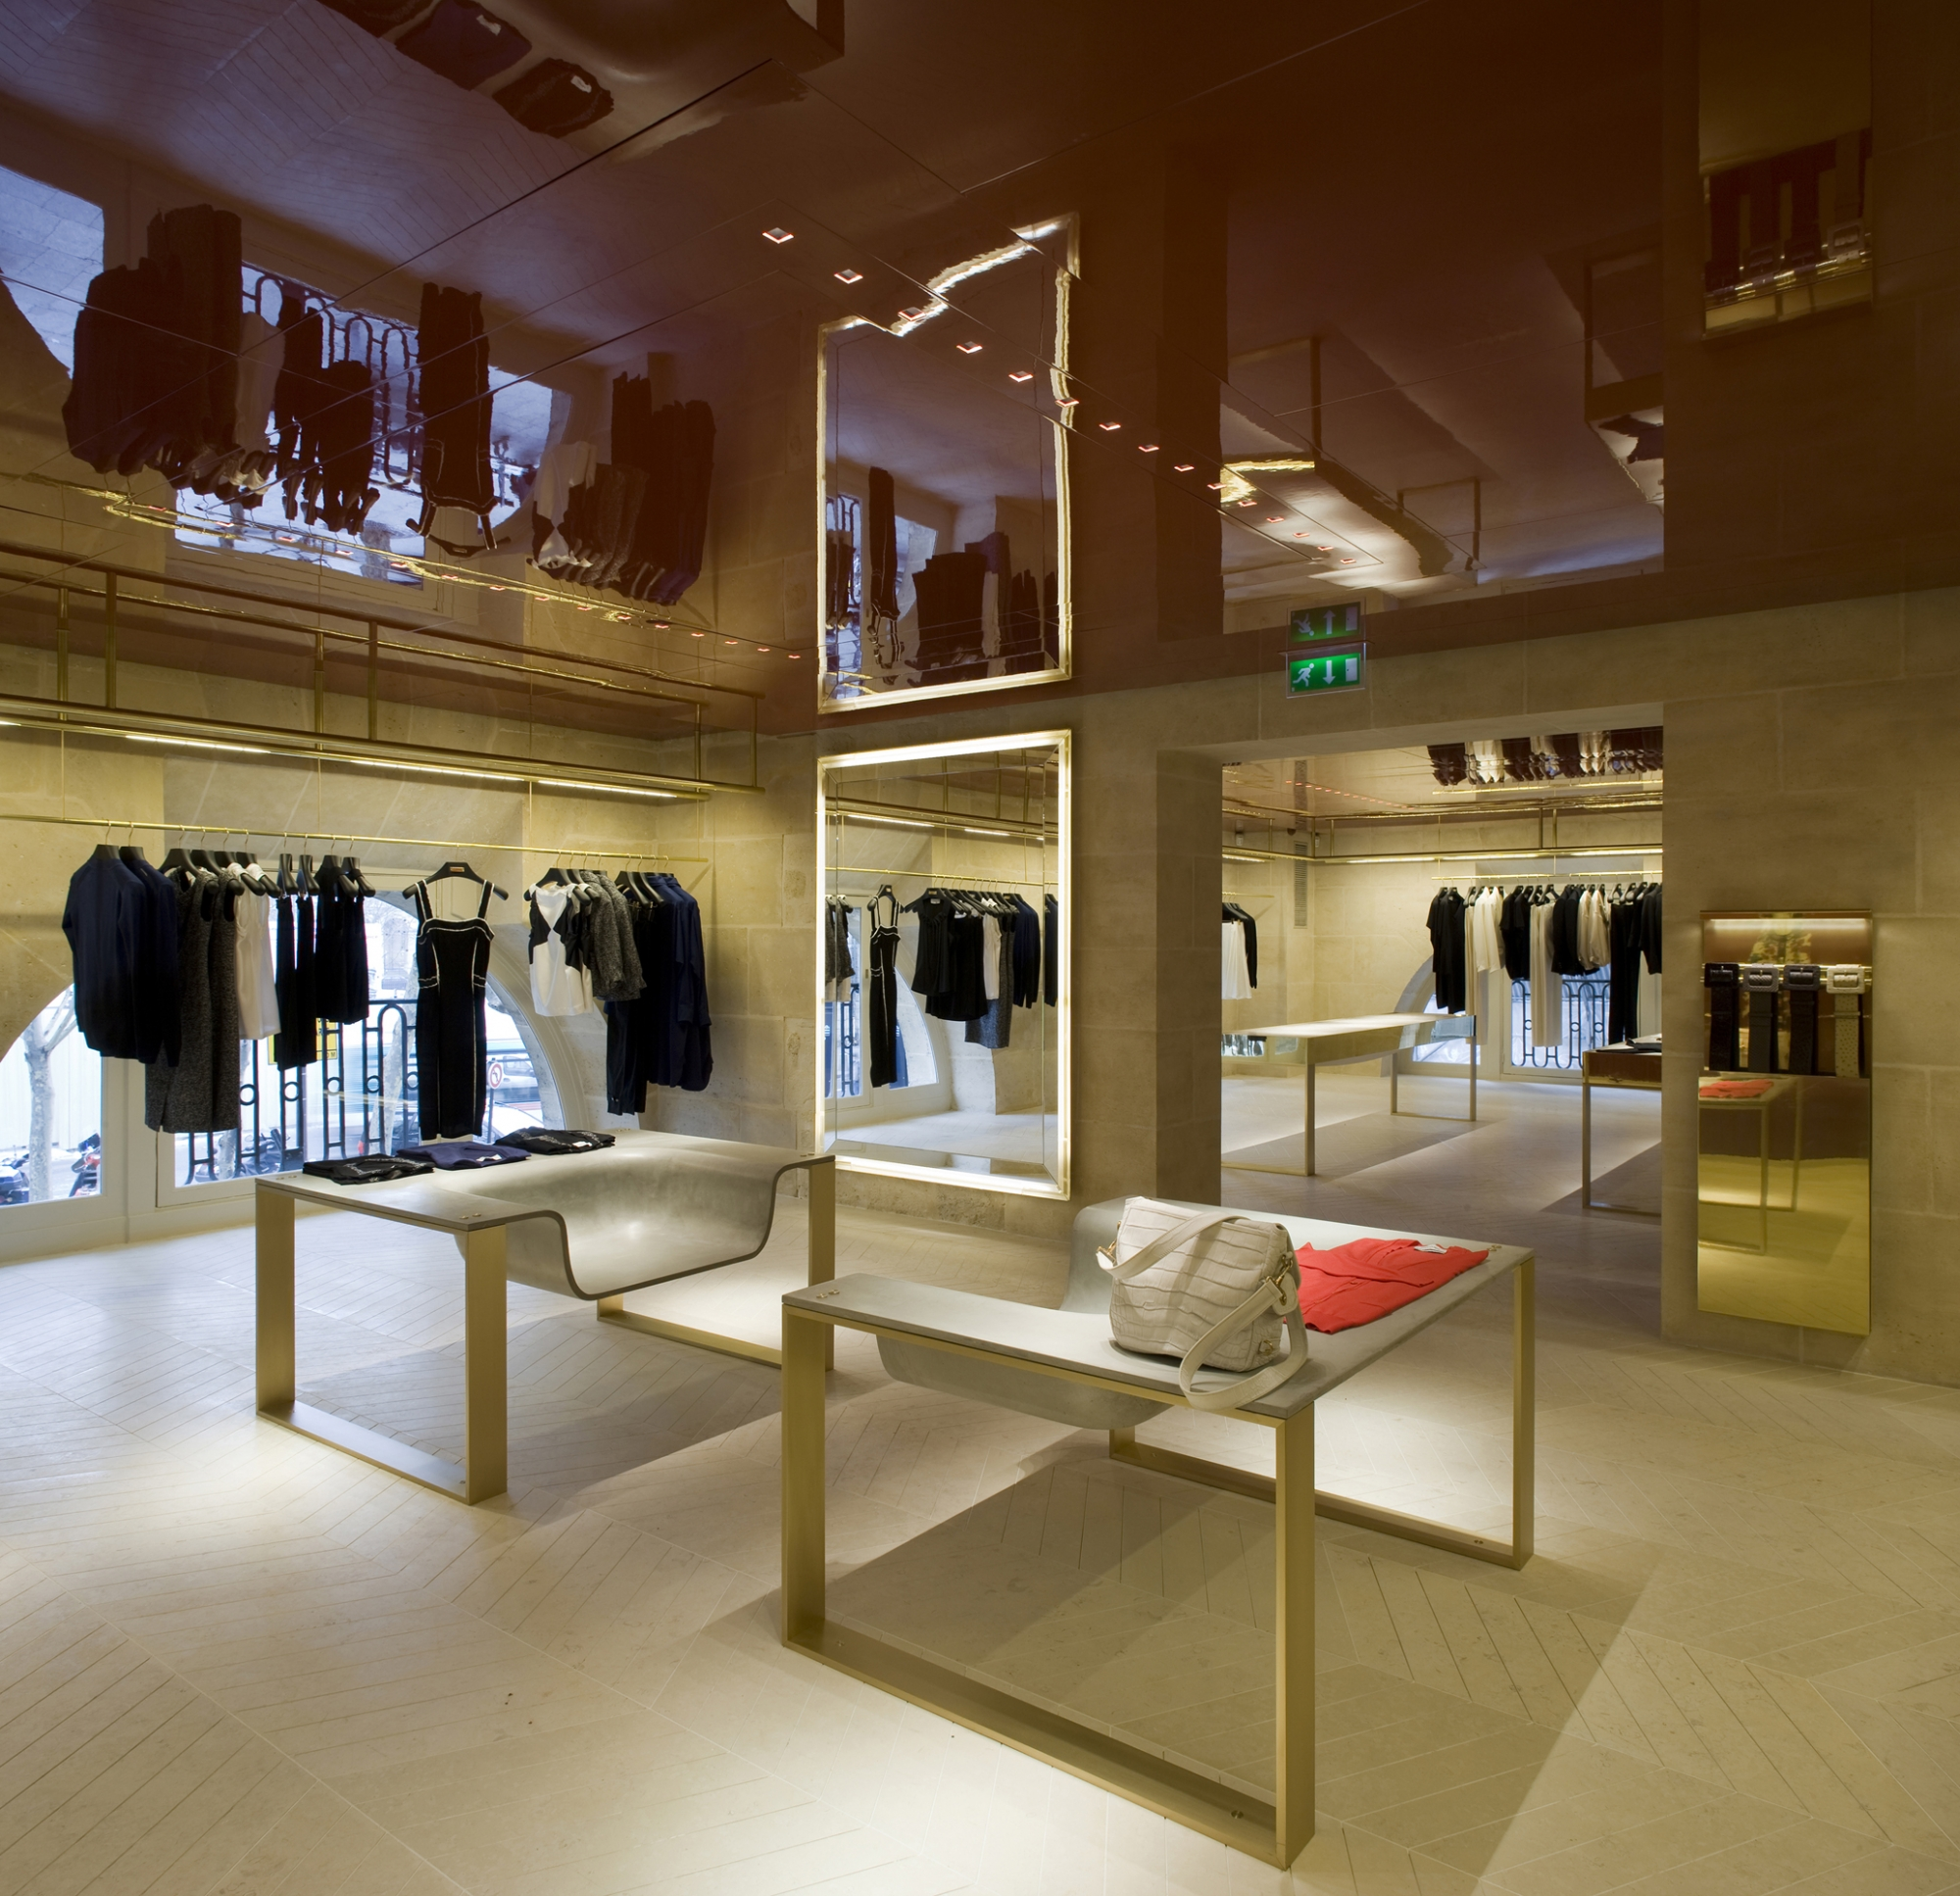 Boutique YSL (Yves Saint Laurent), Paris Moatti & Rivière